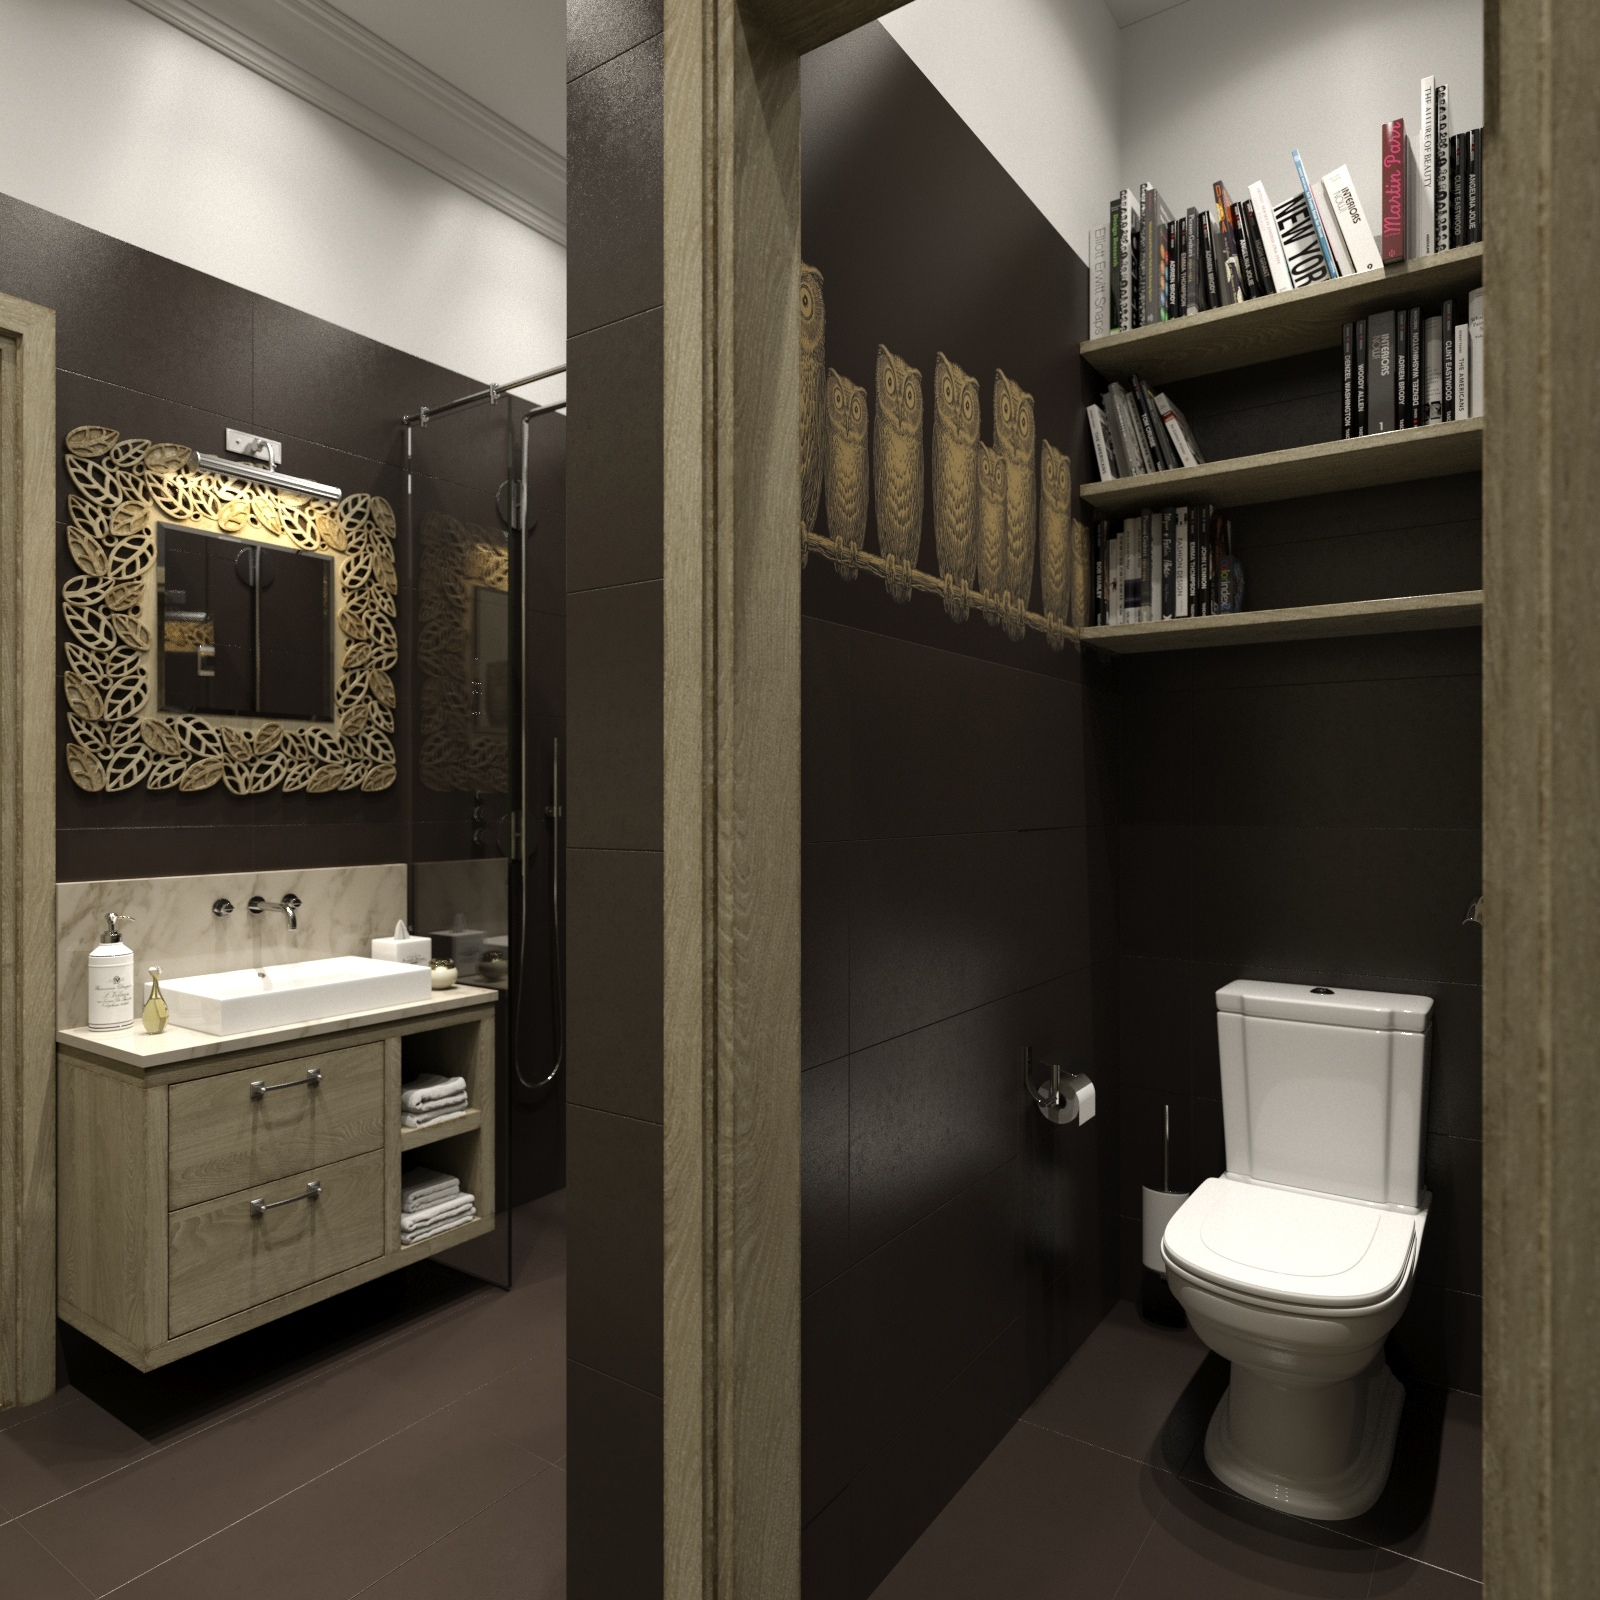 Homey feeling room designs for Small toilet room design